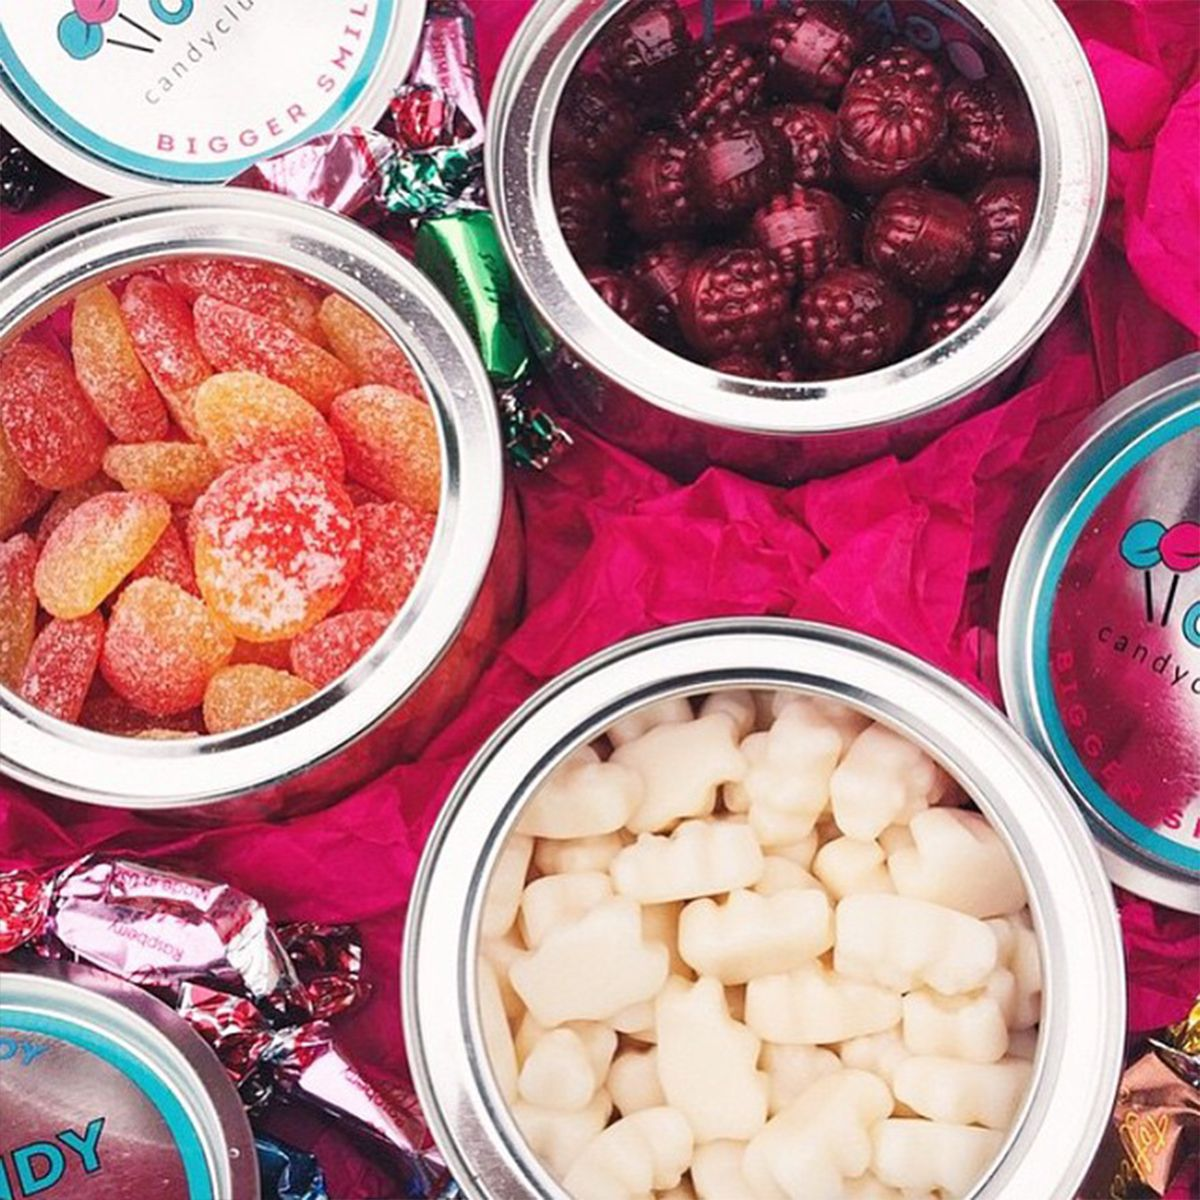 Sweetassortment A Monthly Box Of Your Favorite Candy Delivered To Your Doorstep Food Sour Candy Breakfast Cake